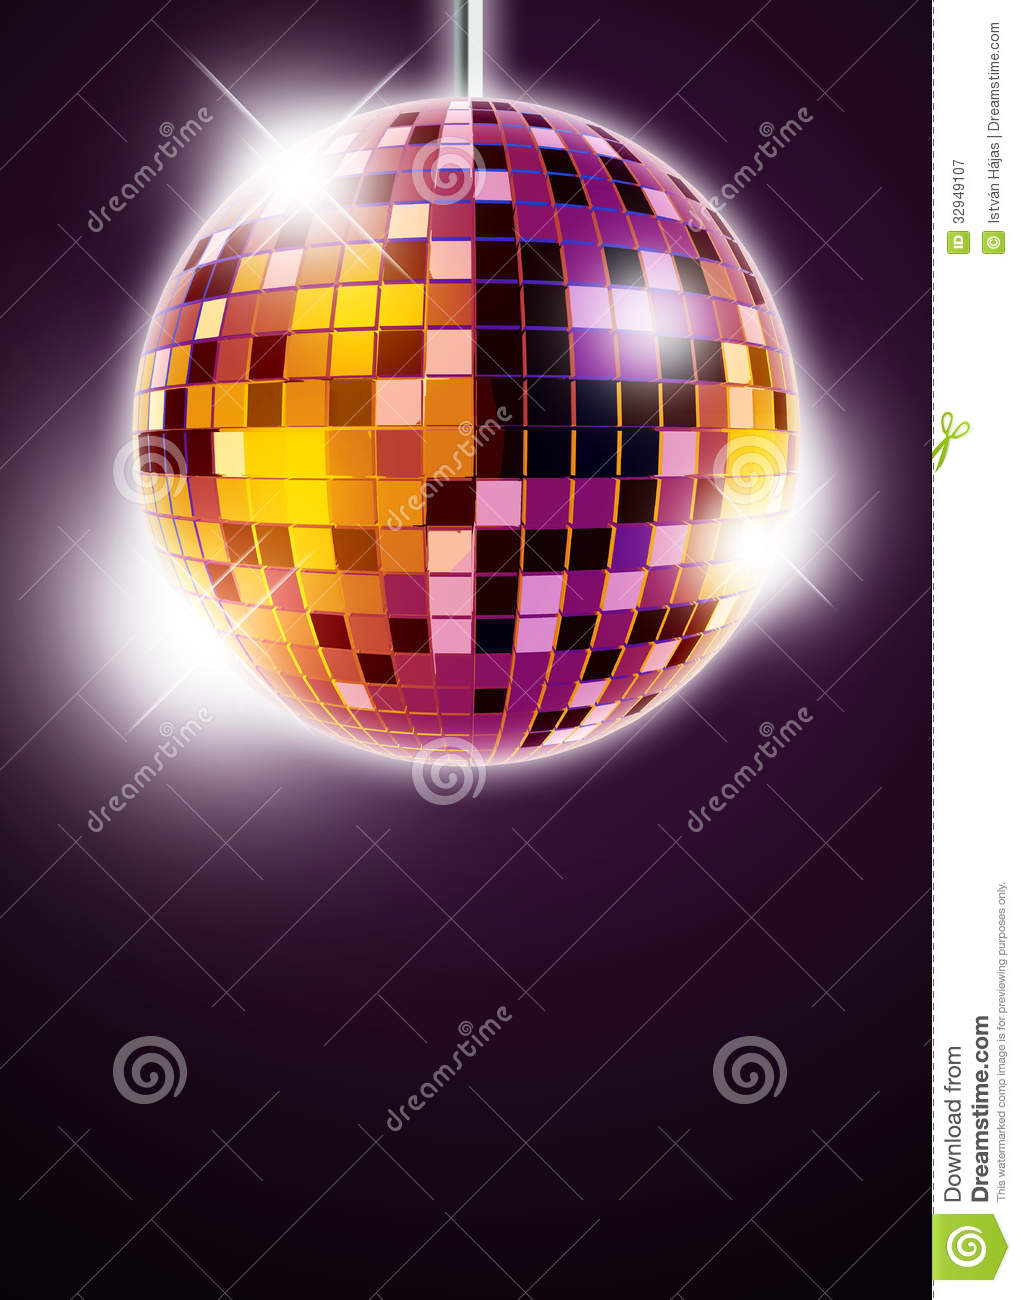 Mirrorball Disco Background Royalty Free Stock Photography ...